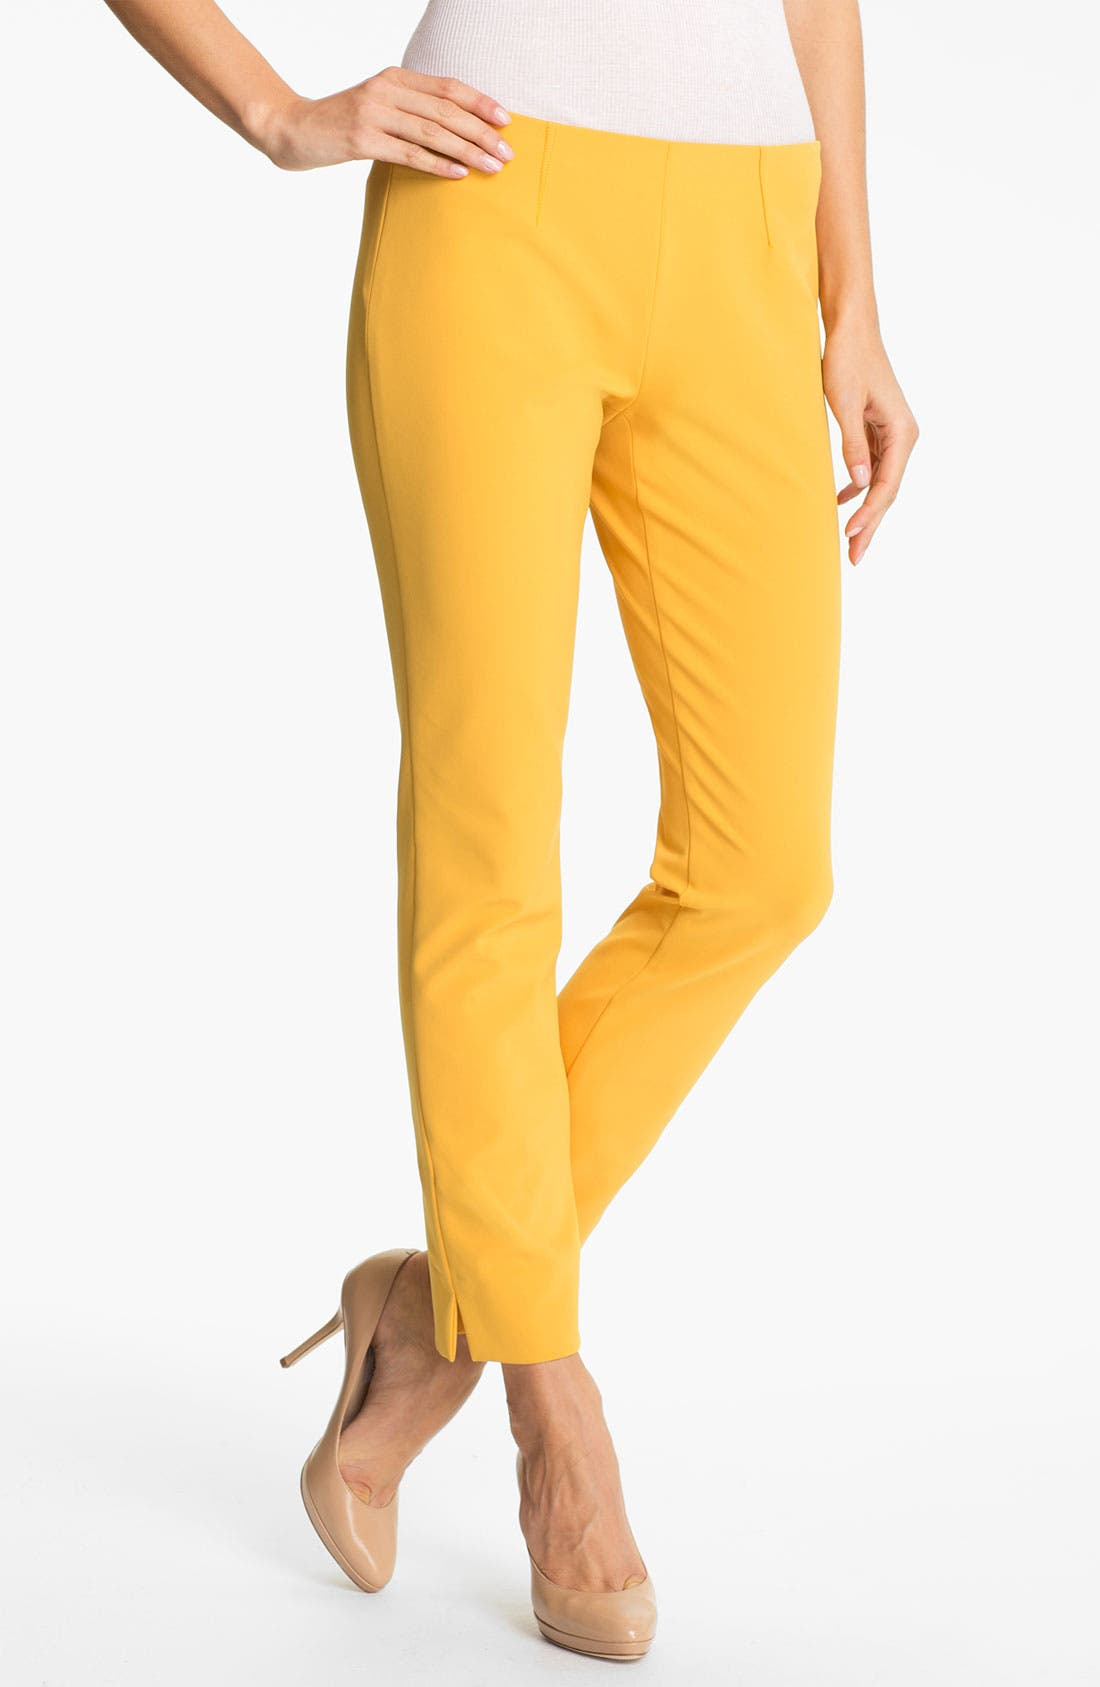 Main Image - Theory 'Belisa' Slim Leg Stretch Pants